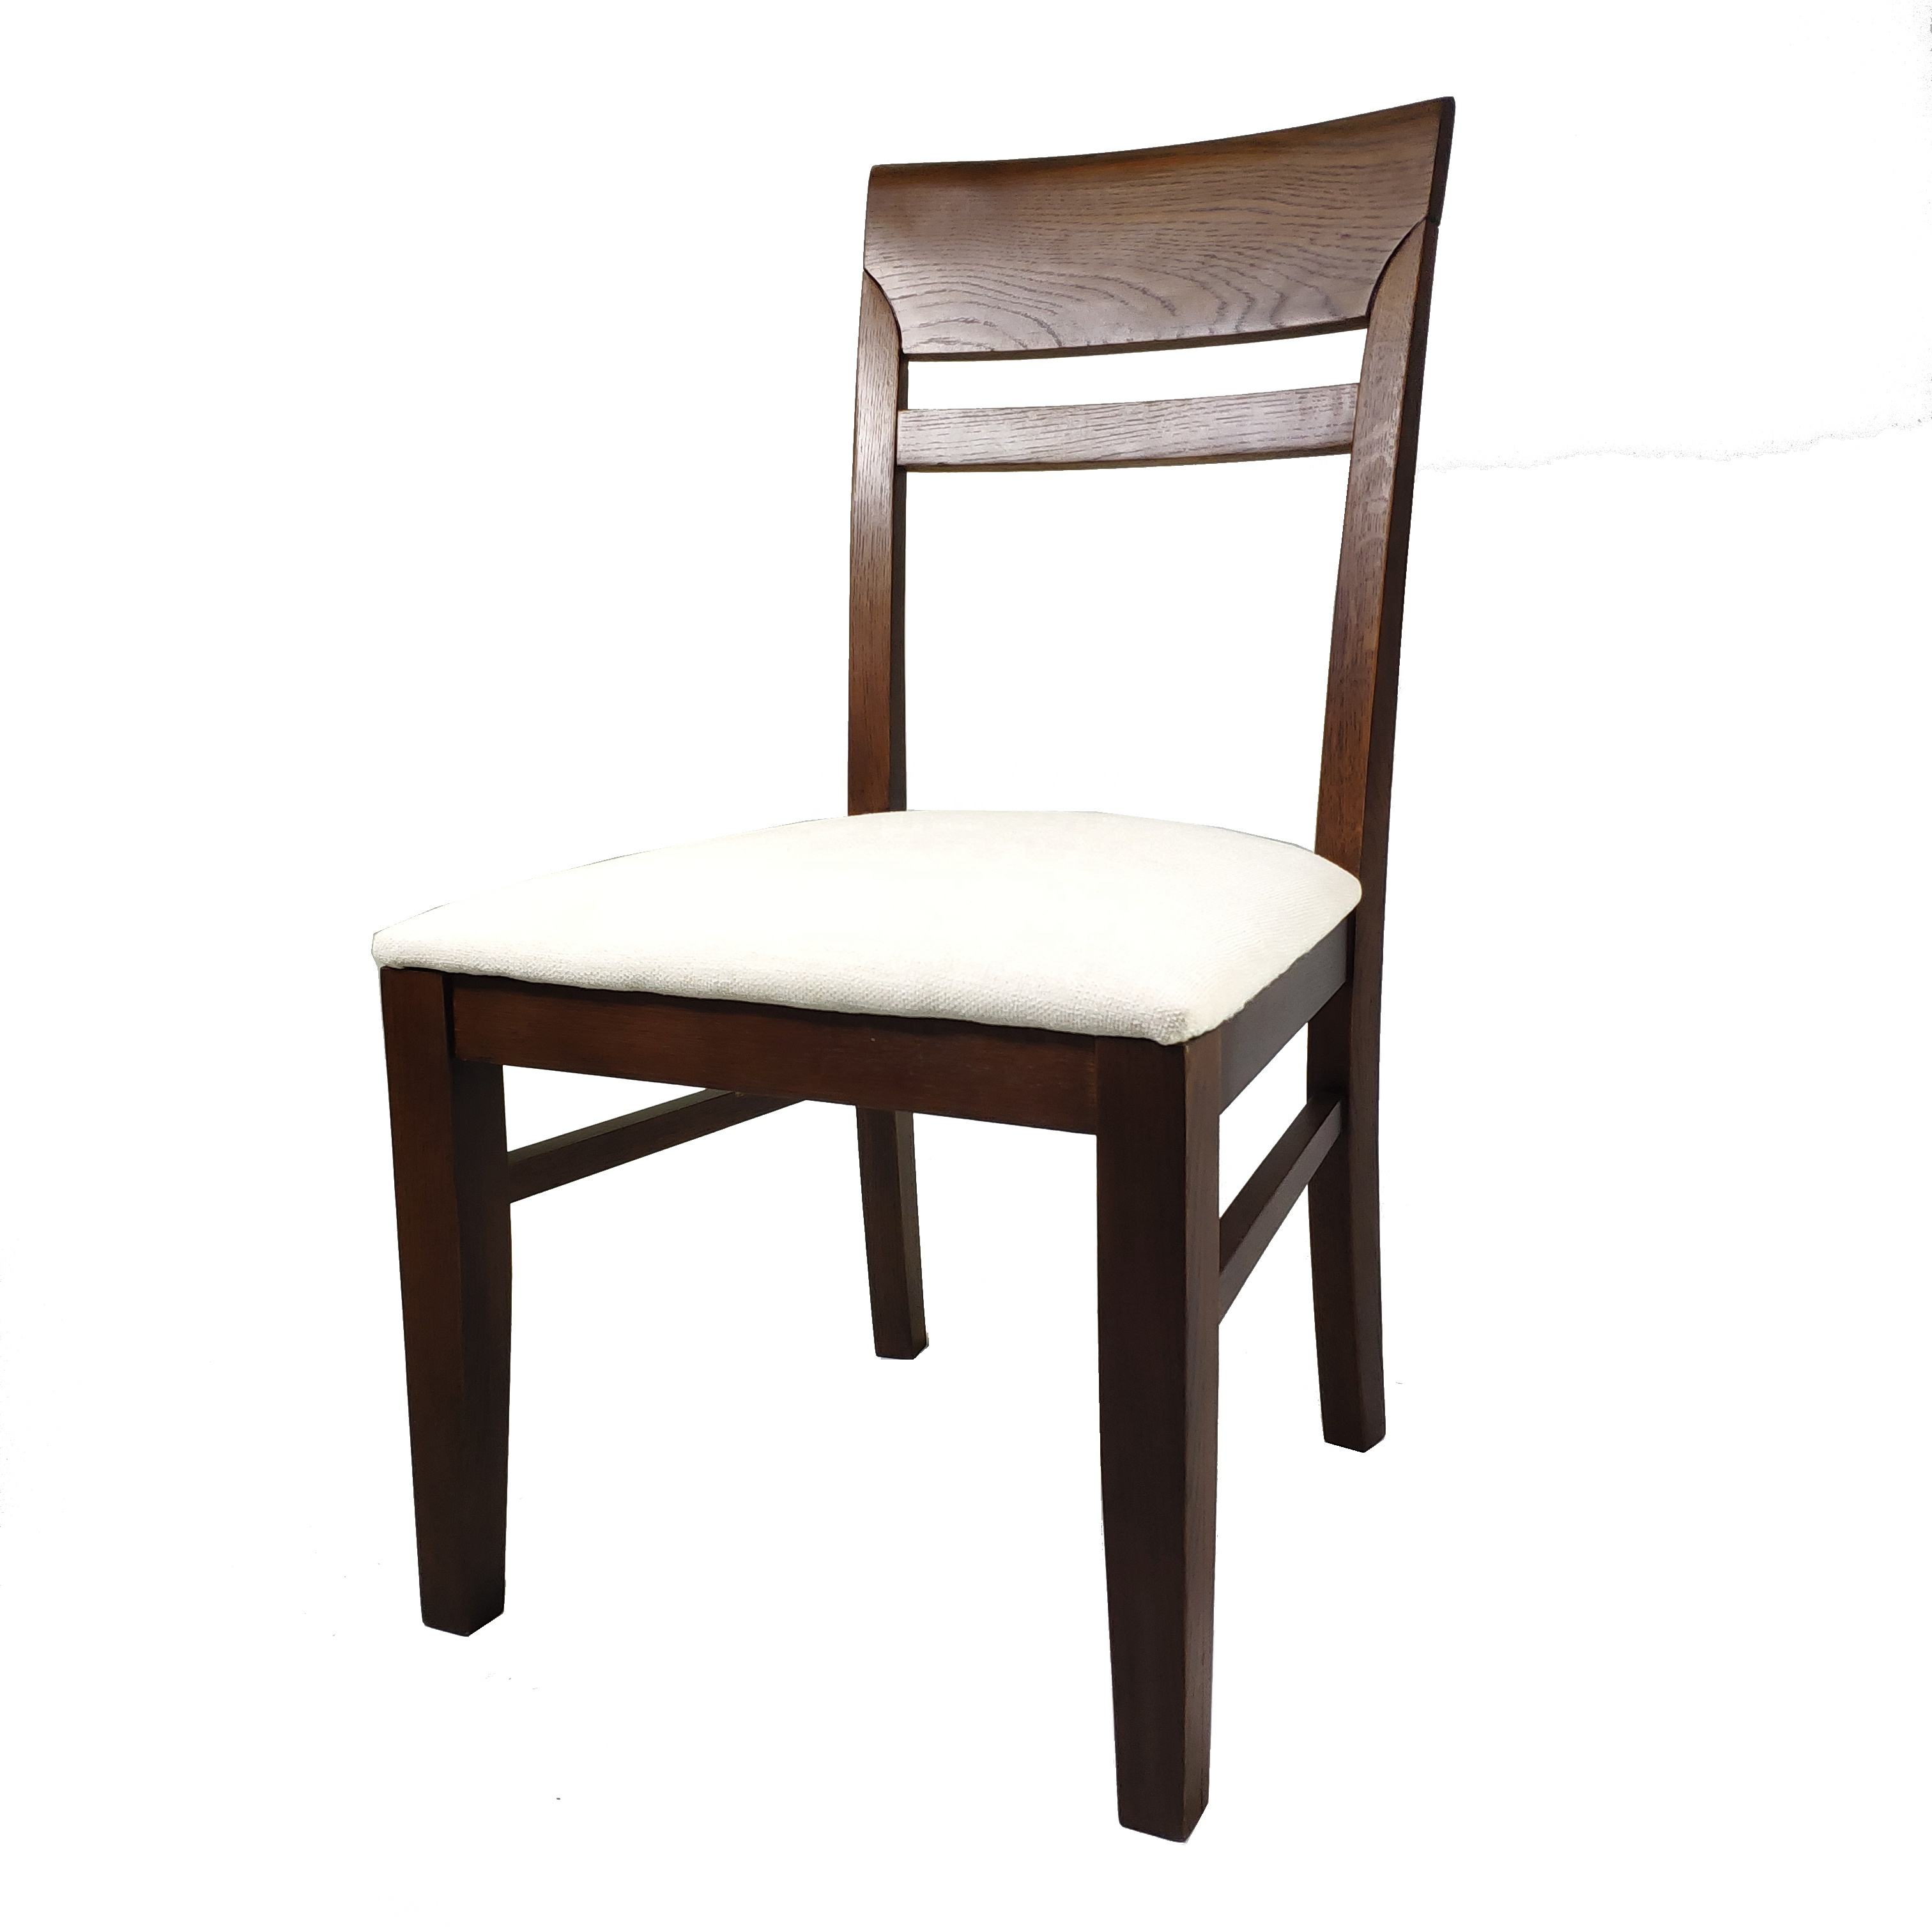 comfortable modern design elegant color solid wood leg dining chair